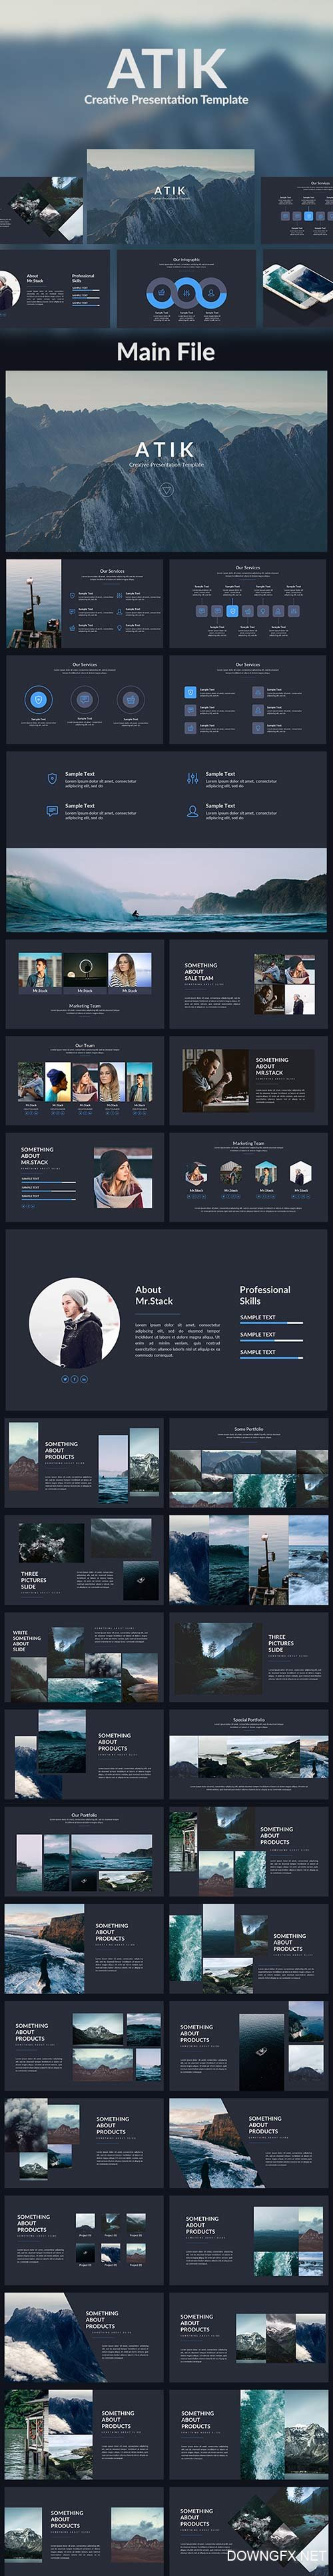 Atik - Creative Powerpoint Template 19413636